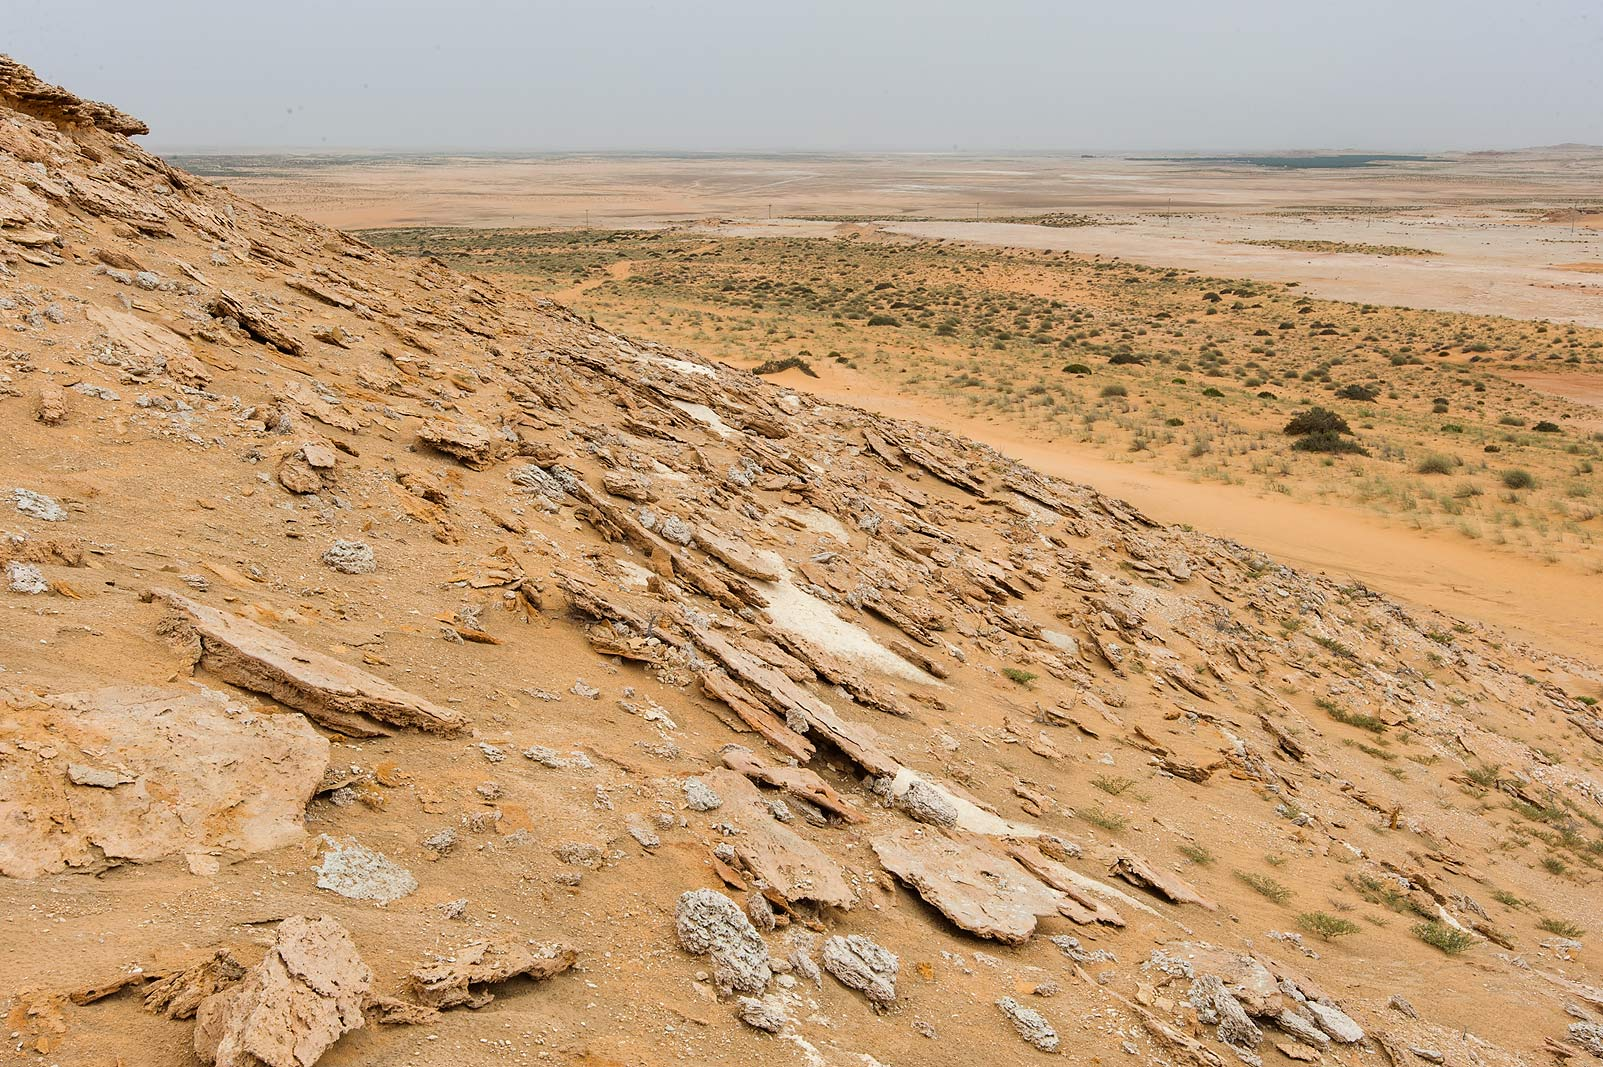 Exfoliation of limestone on a slope of a hill in...Reserve near Abu Samra. Southern Qatar